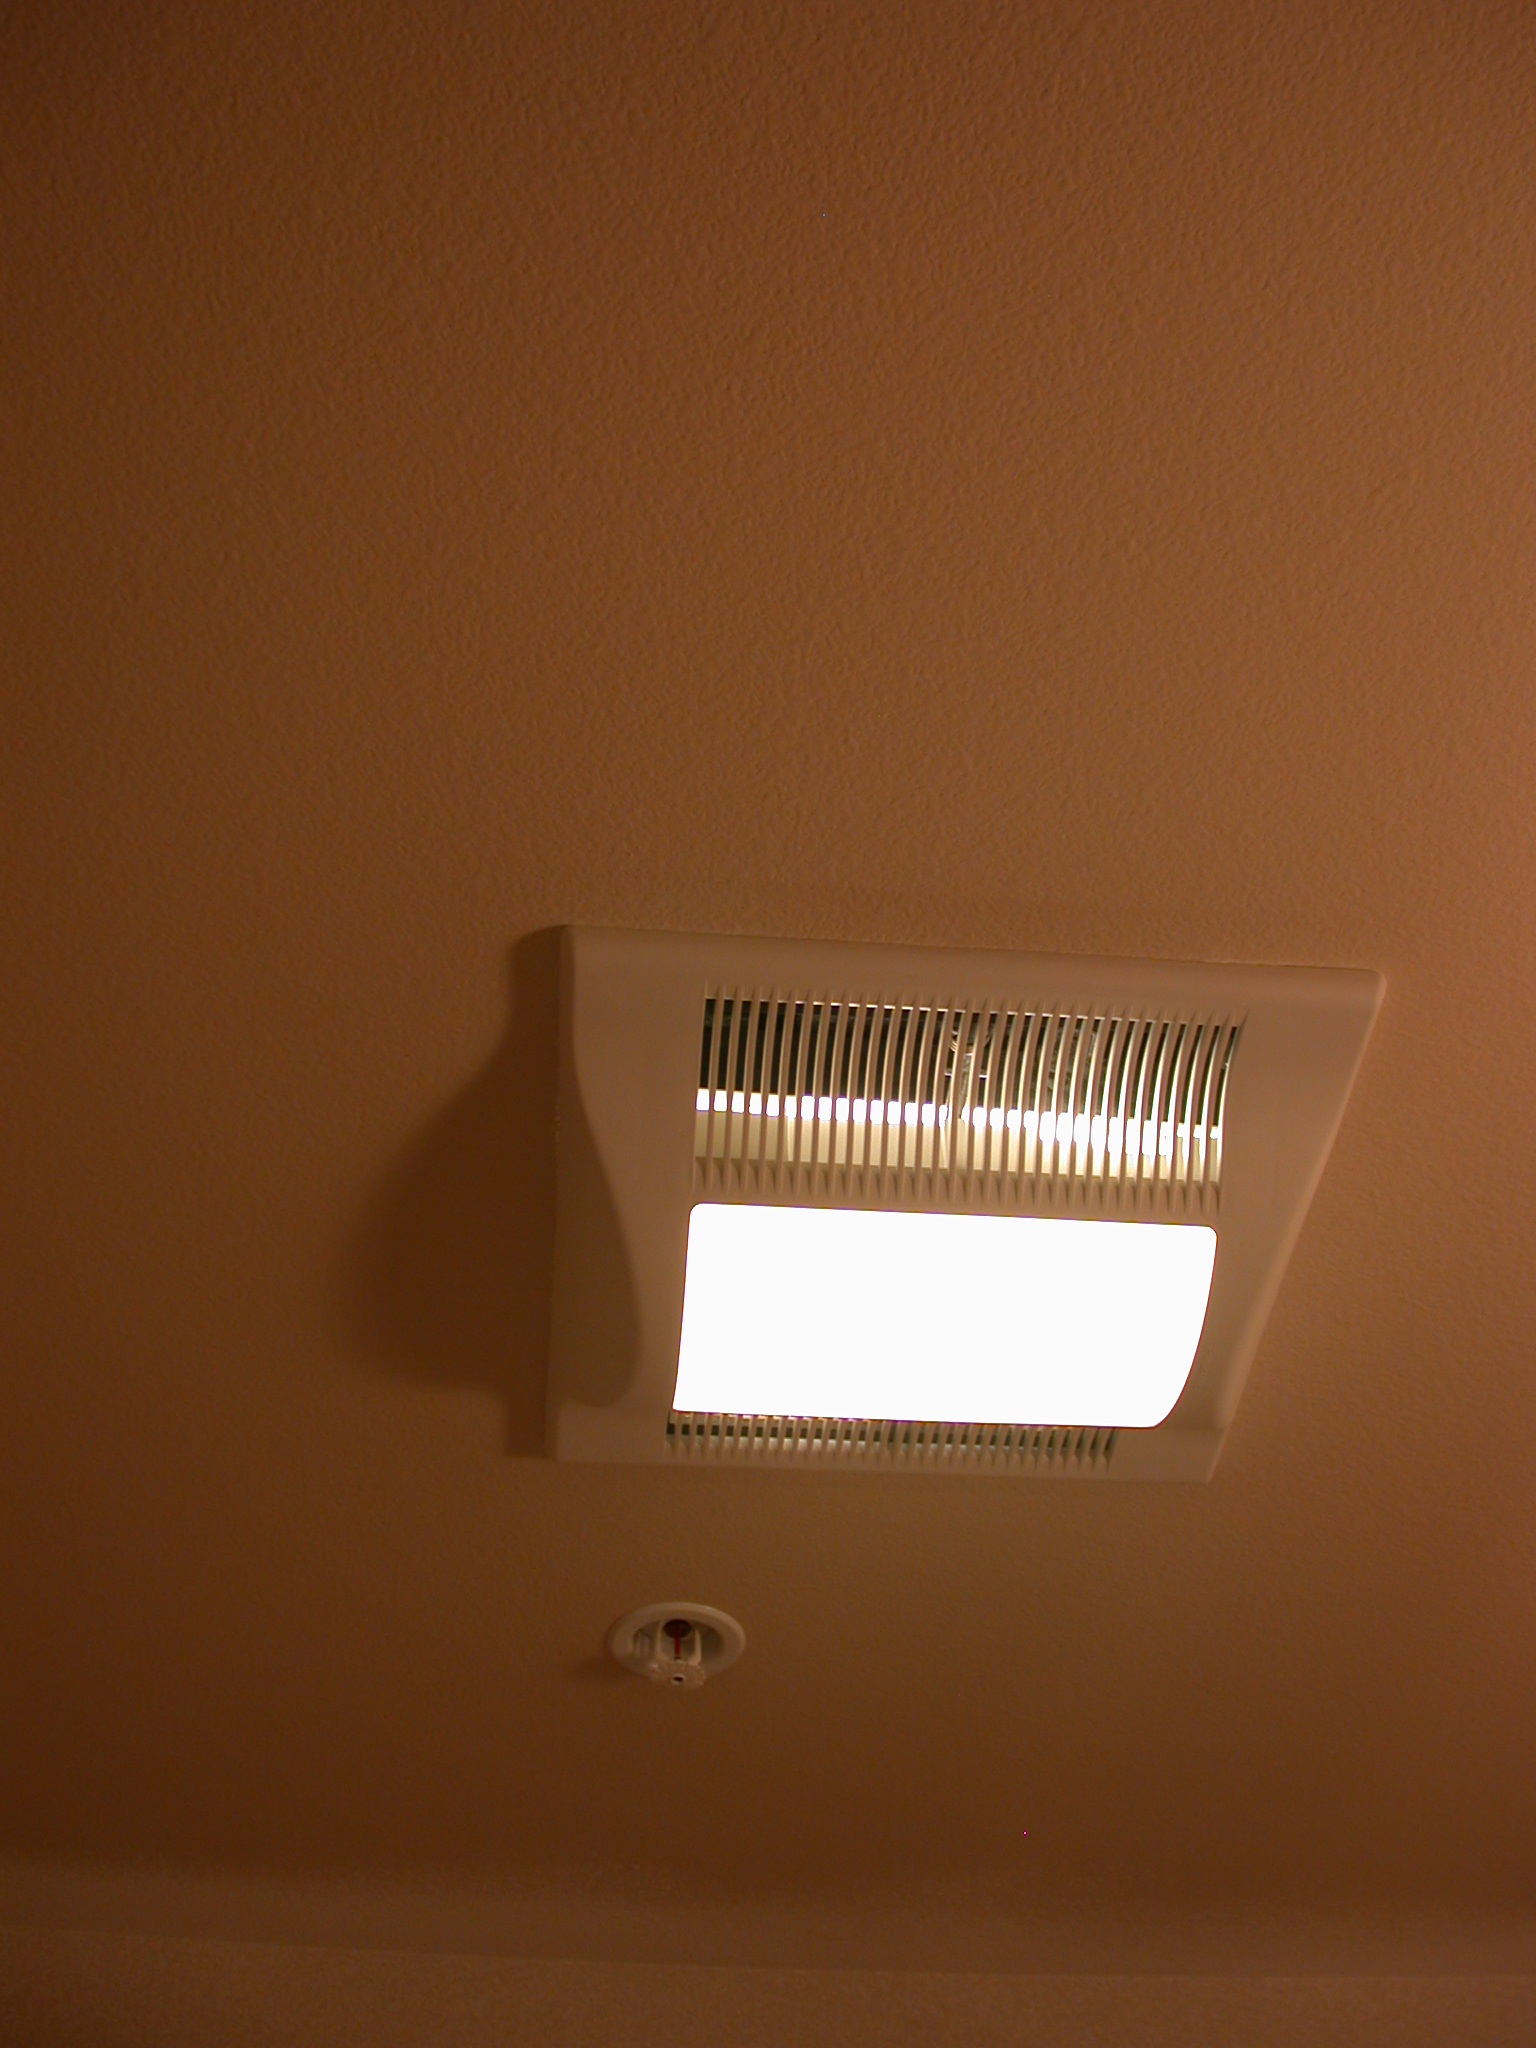 Light and Exhaust Fan in Guest Bathroom in Moms Condominium